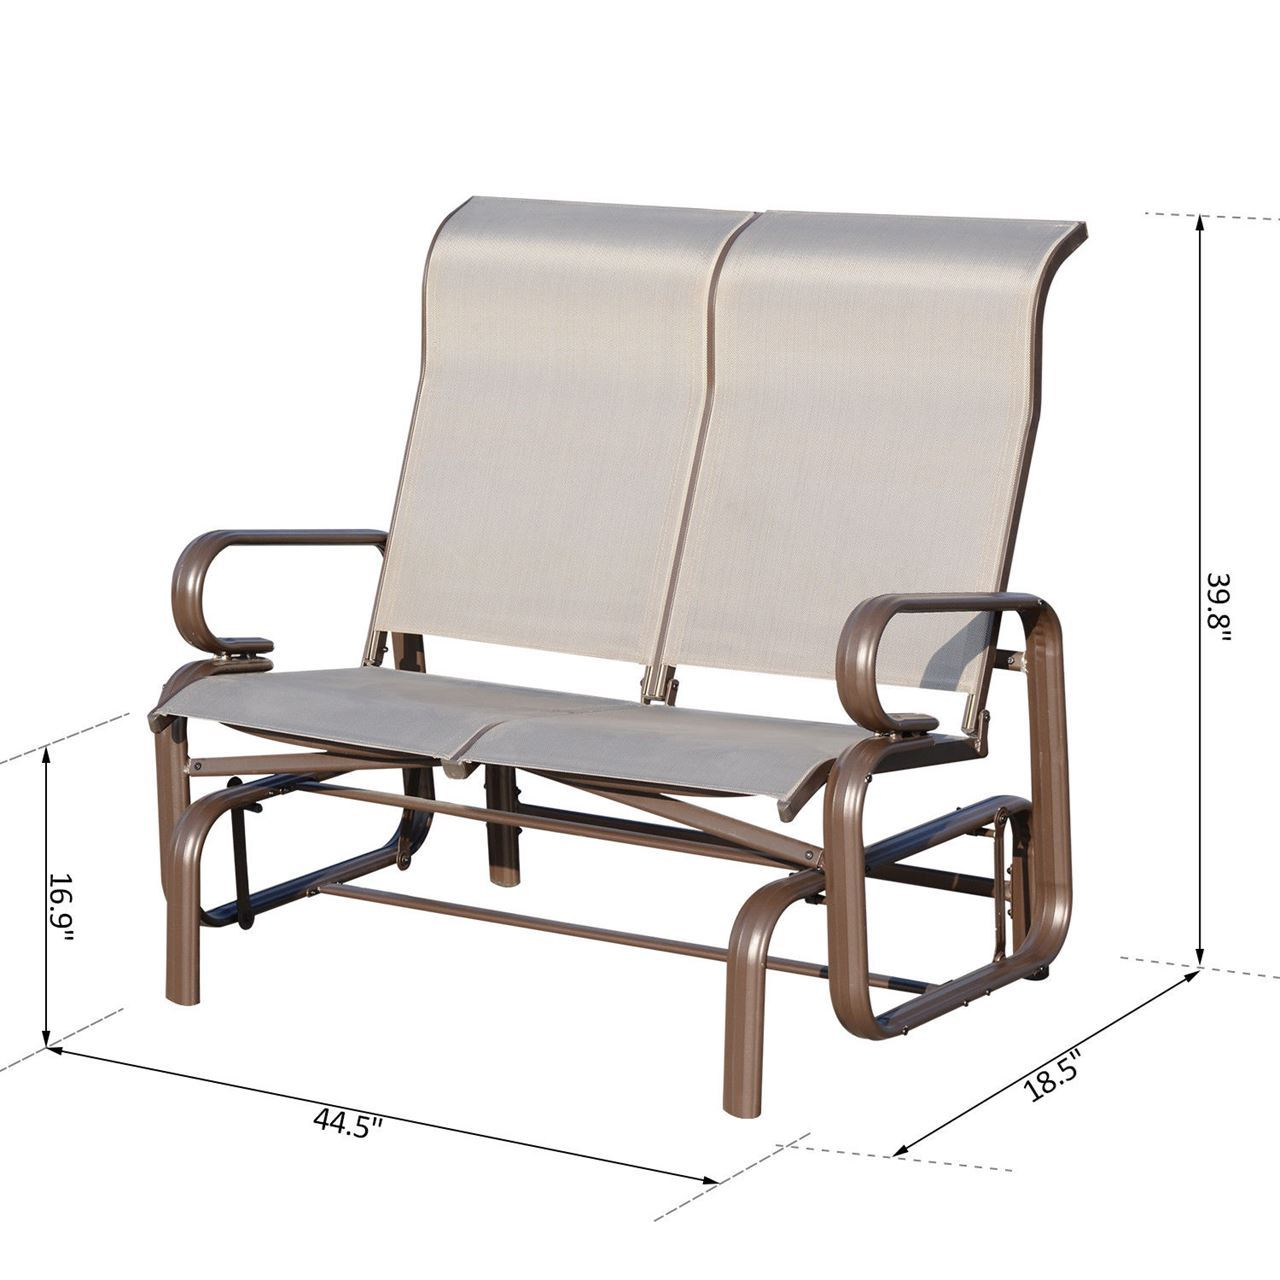 Outdoor Aluminum Double Glider Rocking Bench Swing Intended For Aluminum Outdoor Double Glider Benches (View 3 of 25)